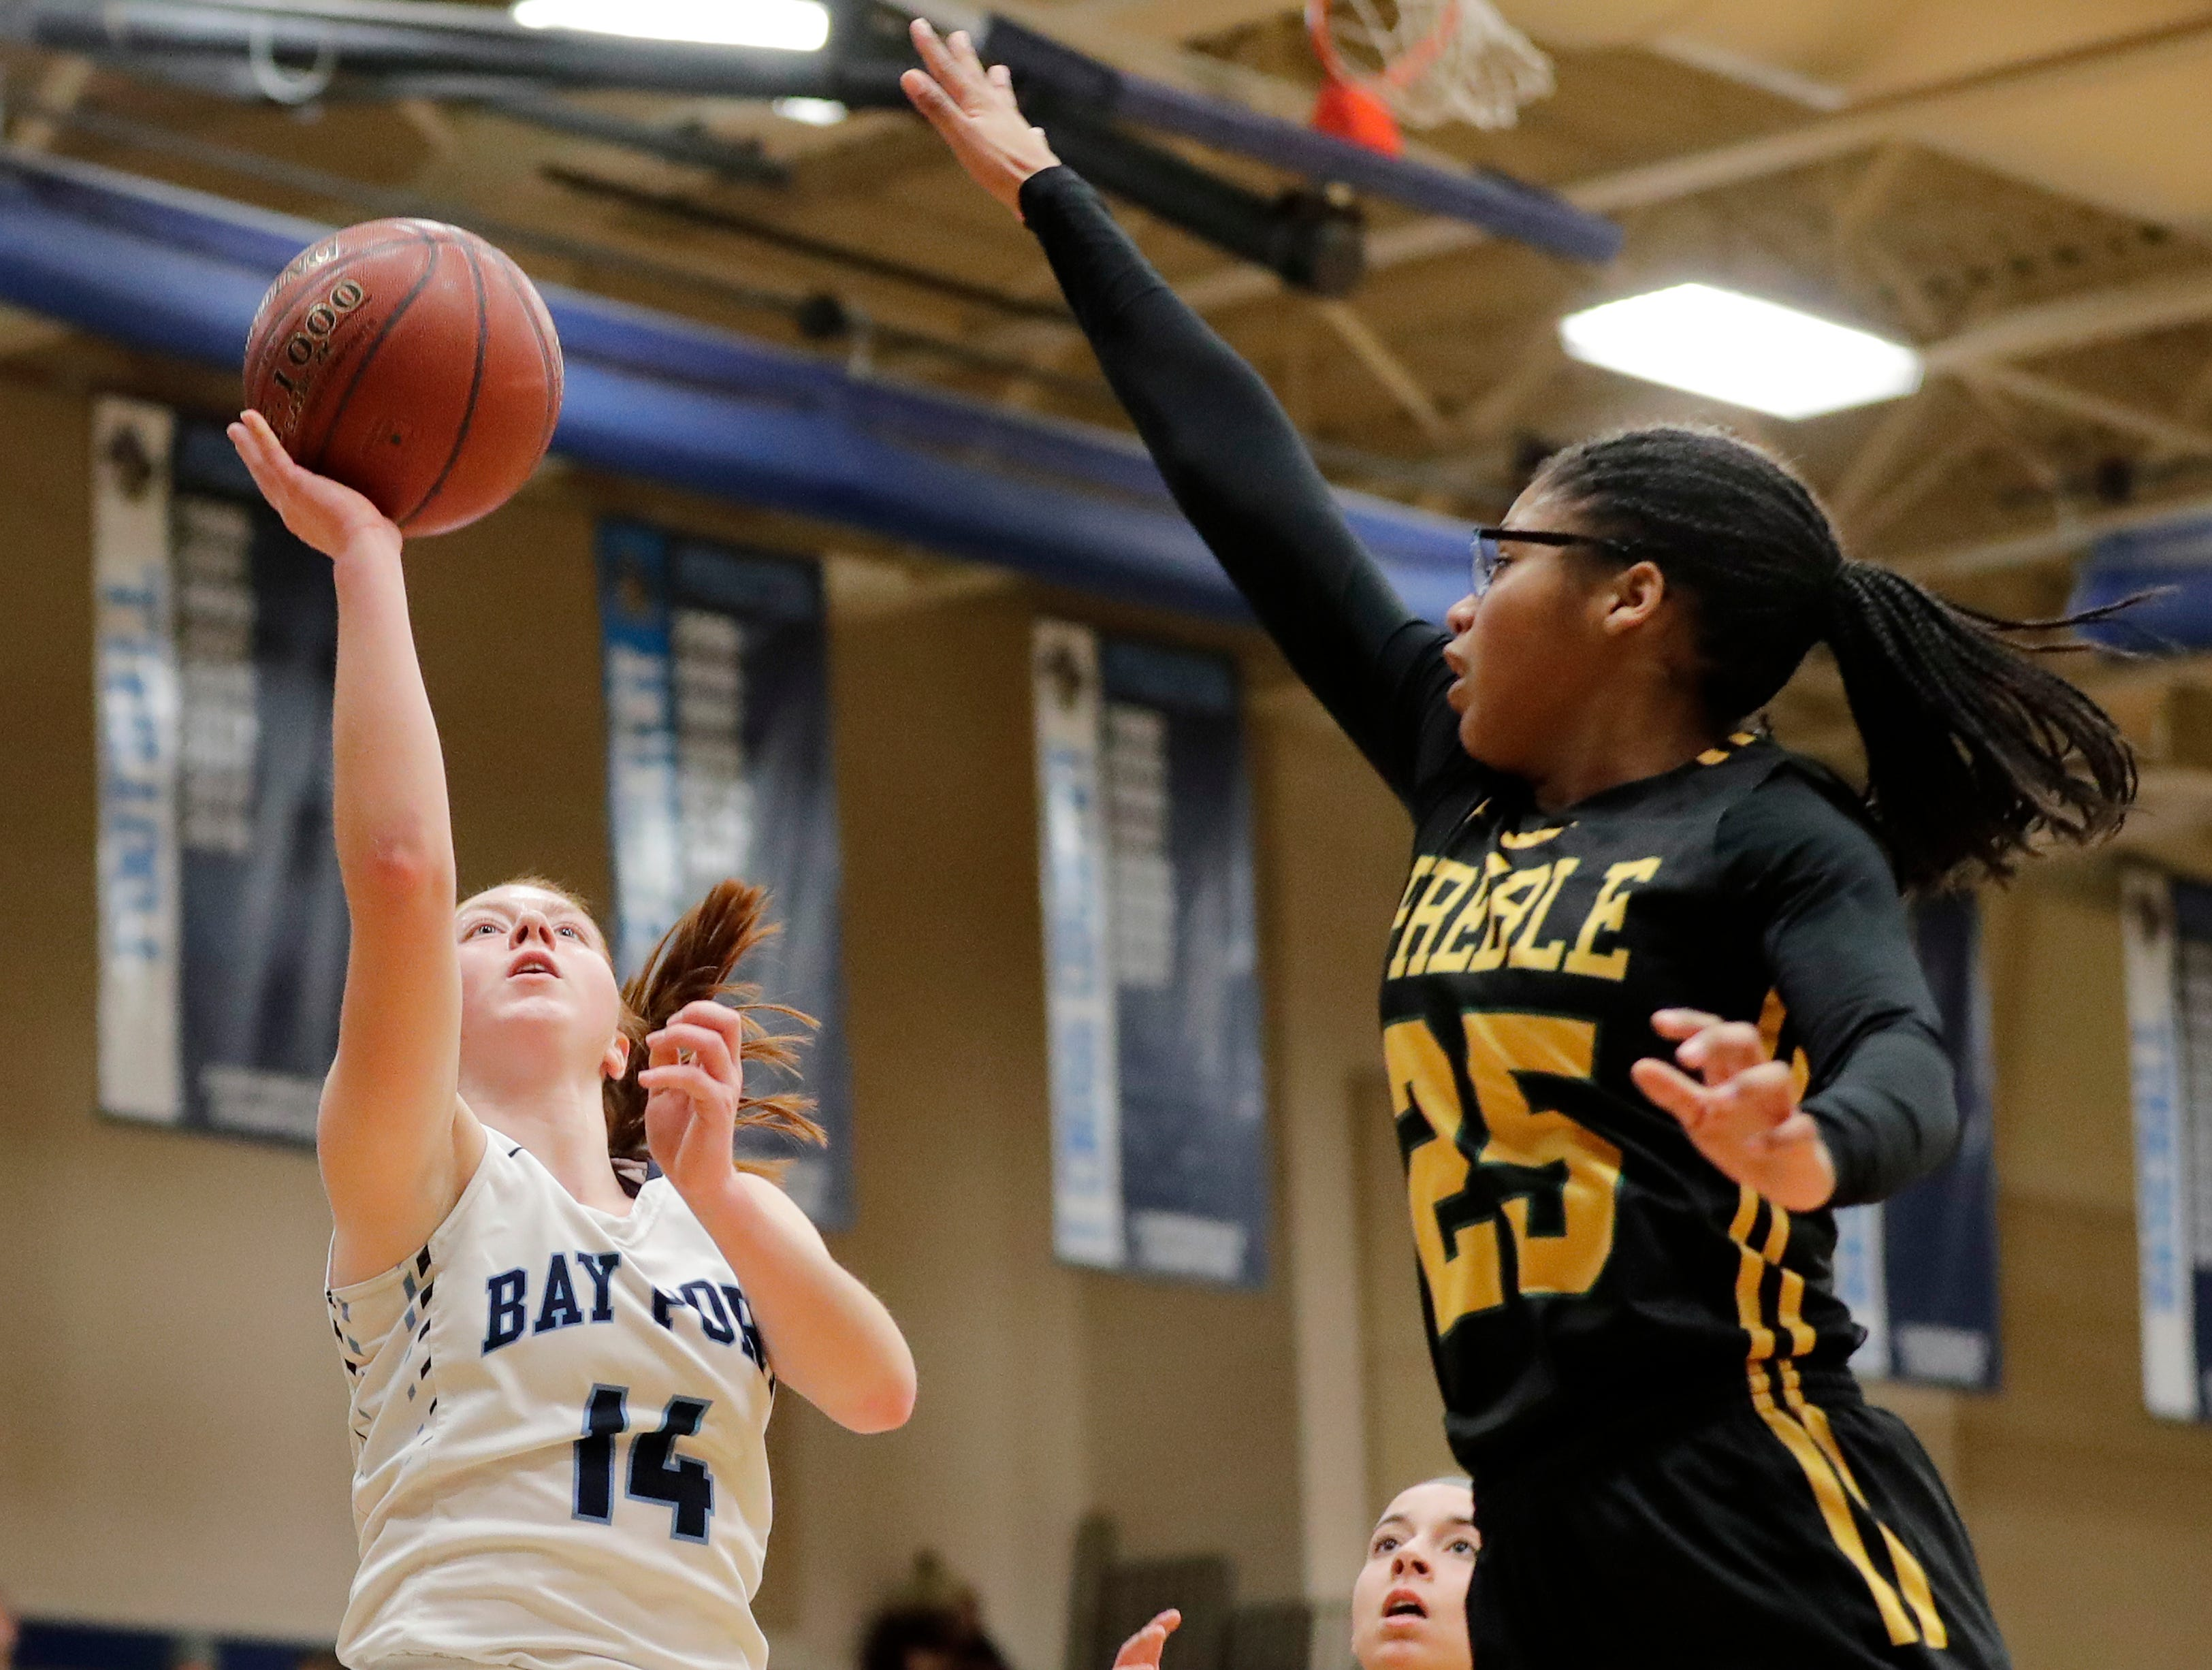 Bay Port's Alaina Abel (14) shoots against Green Bay Preble's Dominique King (25) in a FRCC girls basketball game at Bay Port high school on Friday, February 8, 2019 in Suamico, Wis.